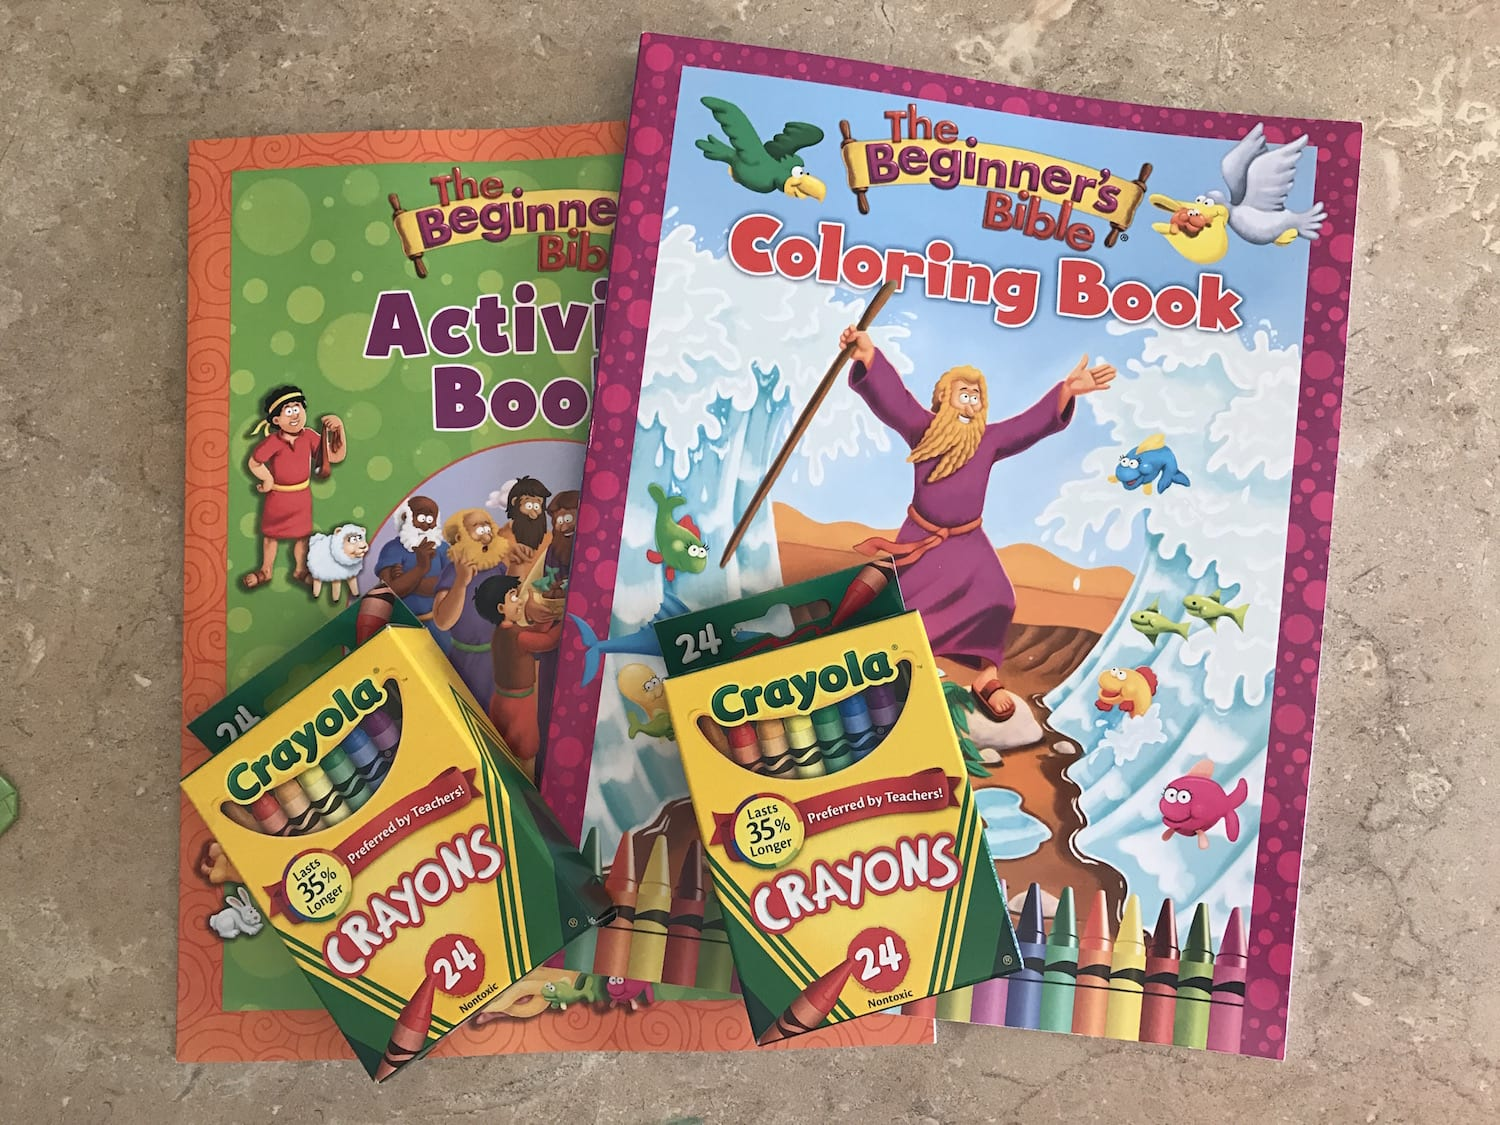 The Beginners Bible Coloring Book Activity